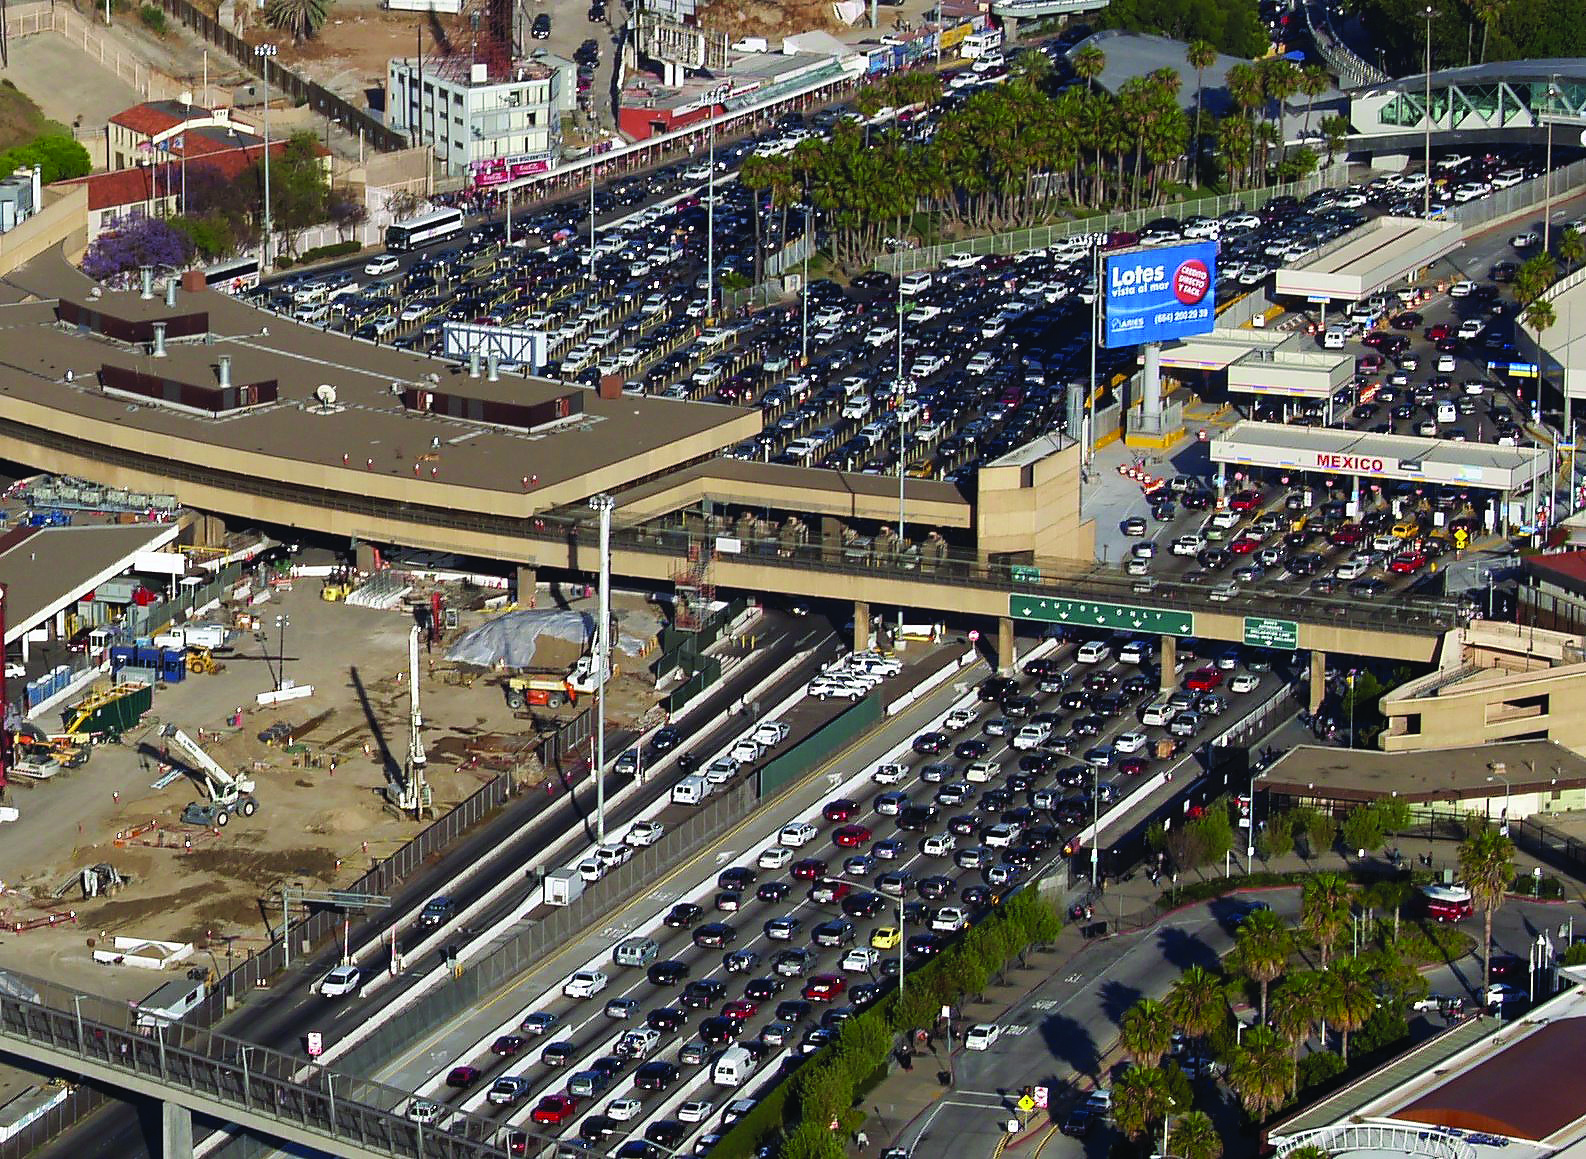 San Ysidro Point of Entry- The world's busiest land border crossing. (photo by Phil Konstantin)